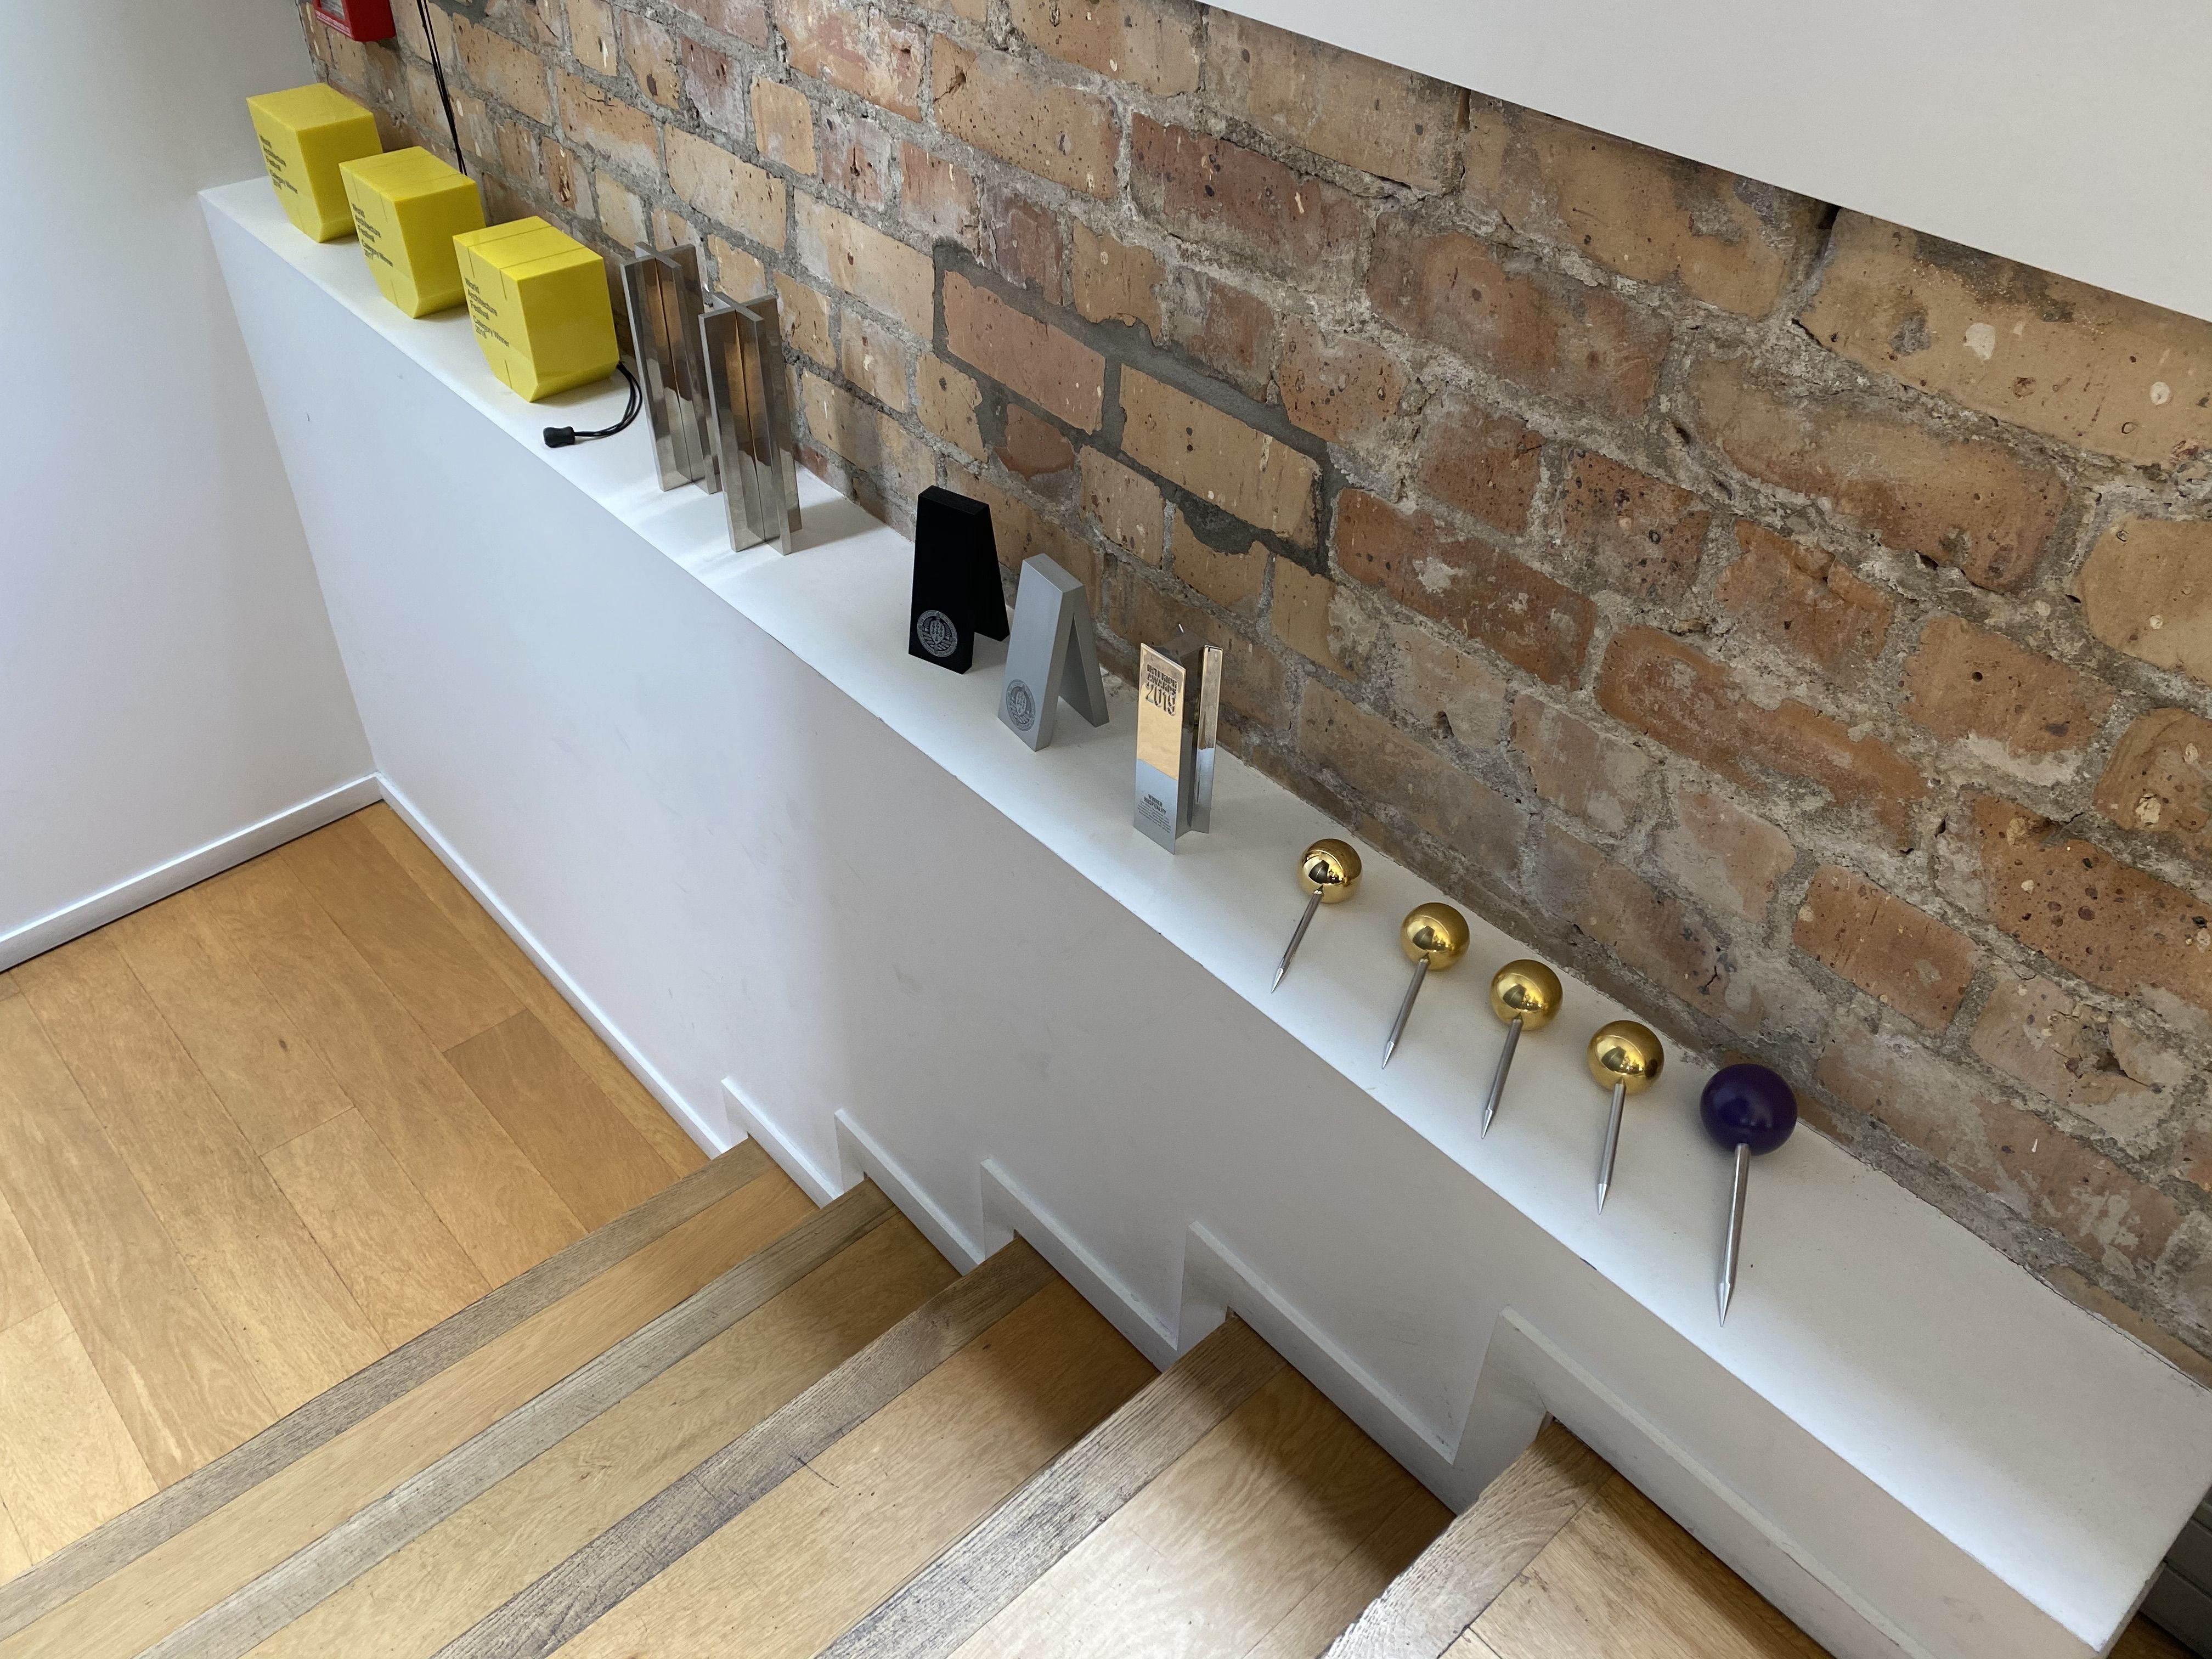 Best design awards purple and gold pins on display in 2020